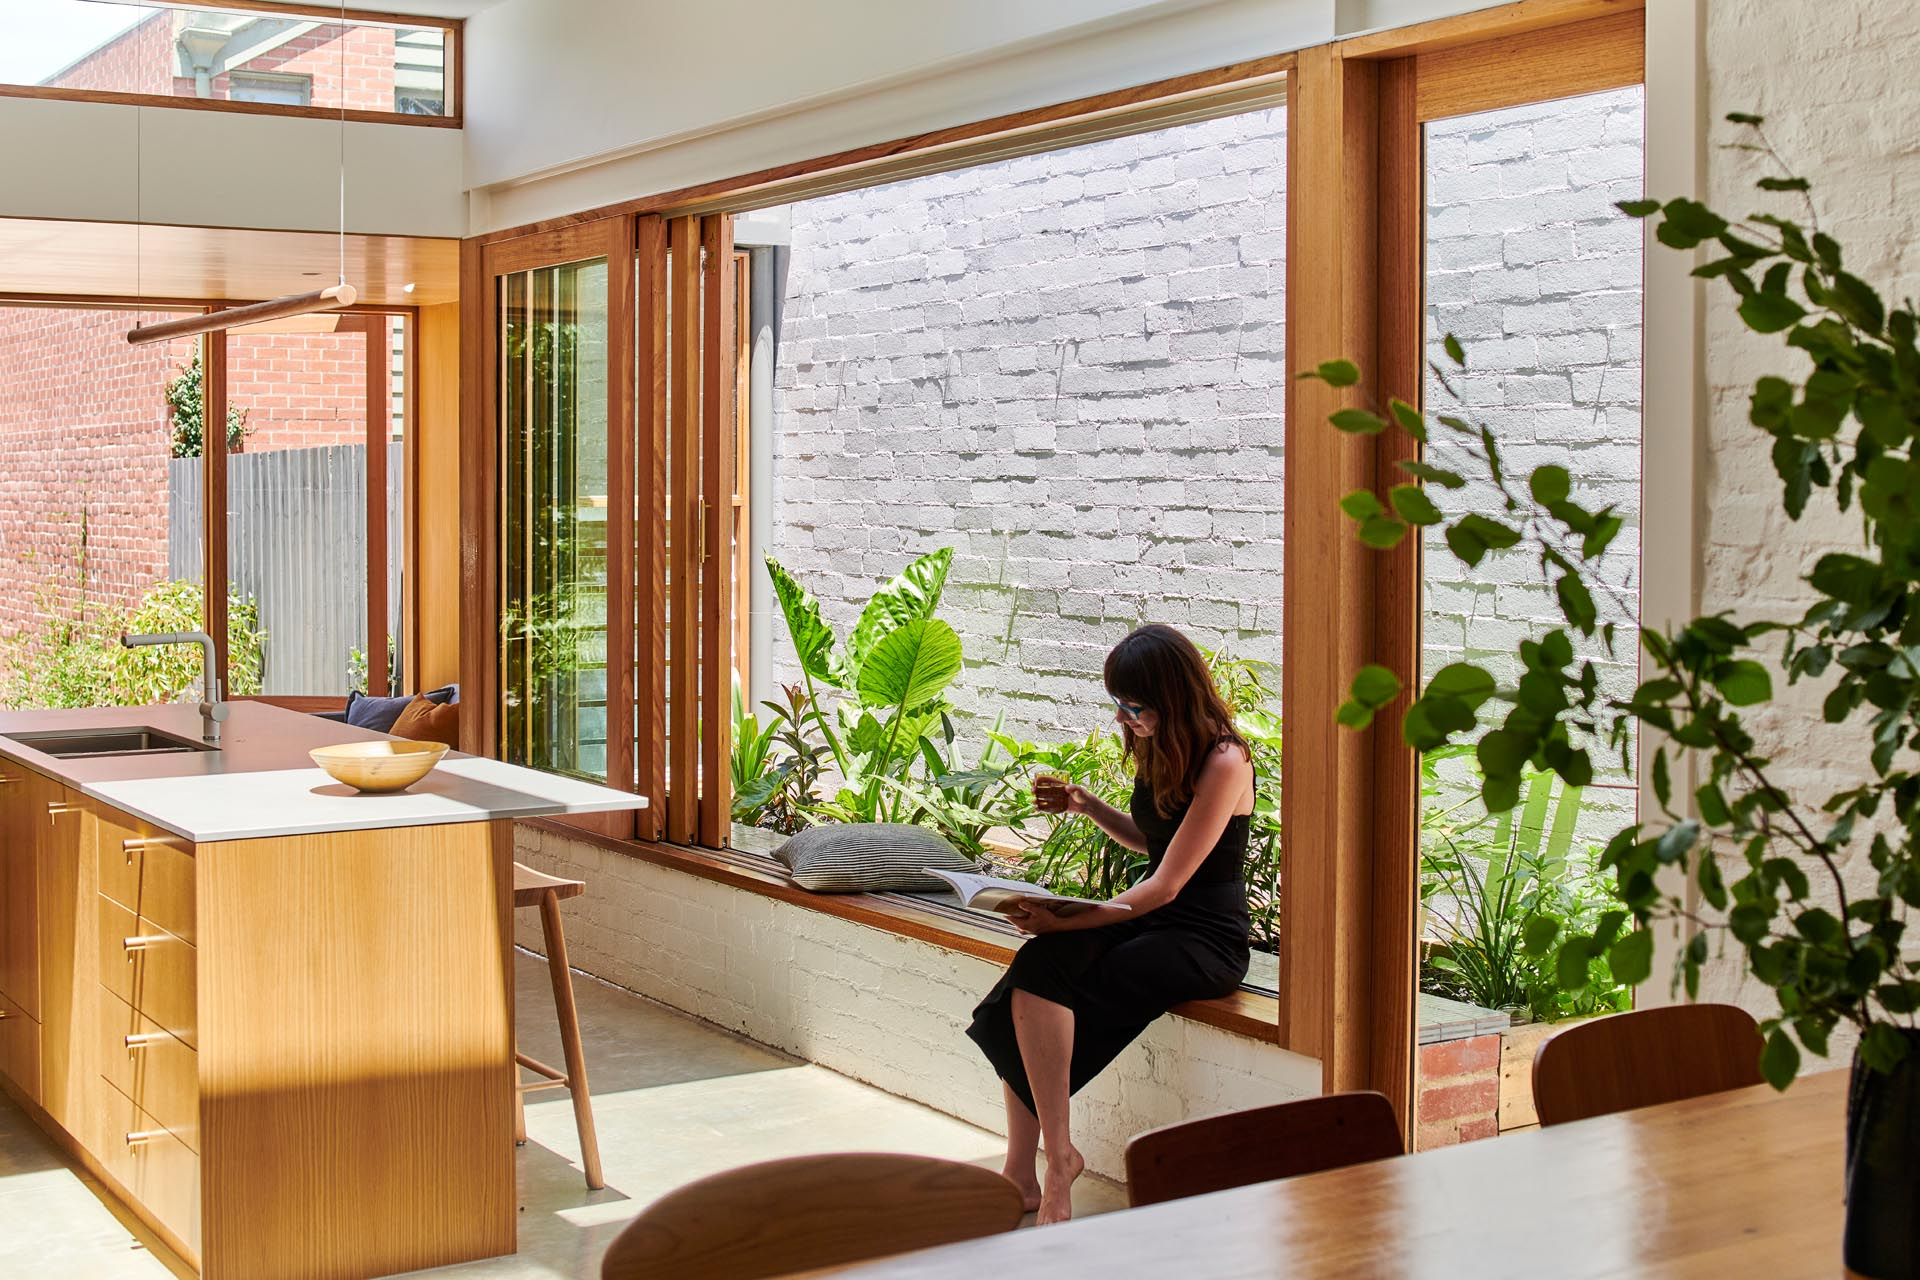 A window frame that doubles as a window seat, allowing the kitchen to become a gathering space for both family and friends.